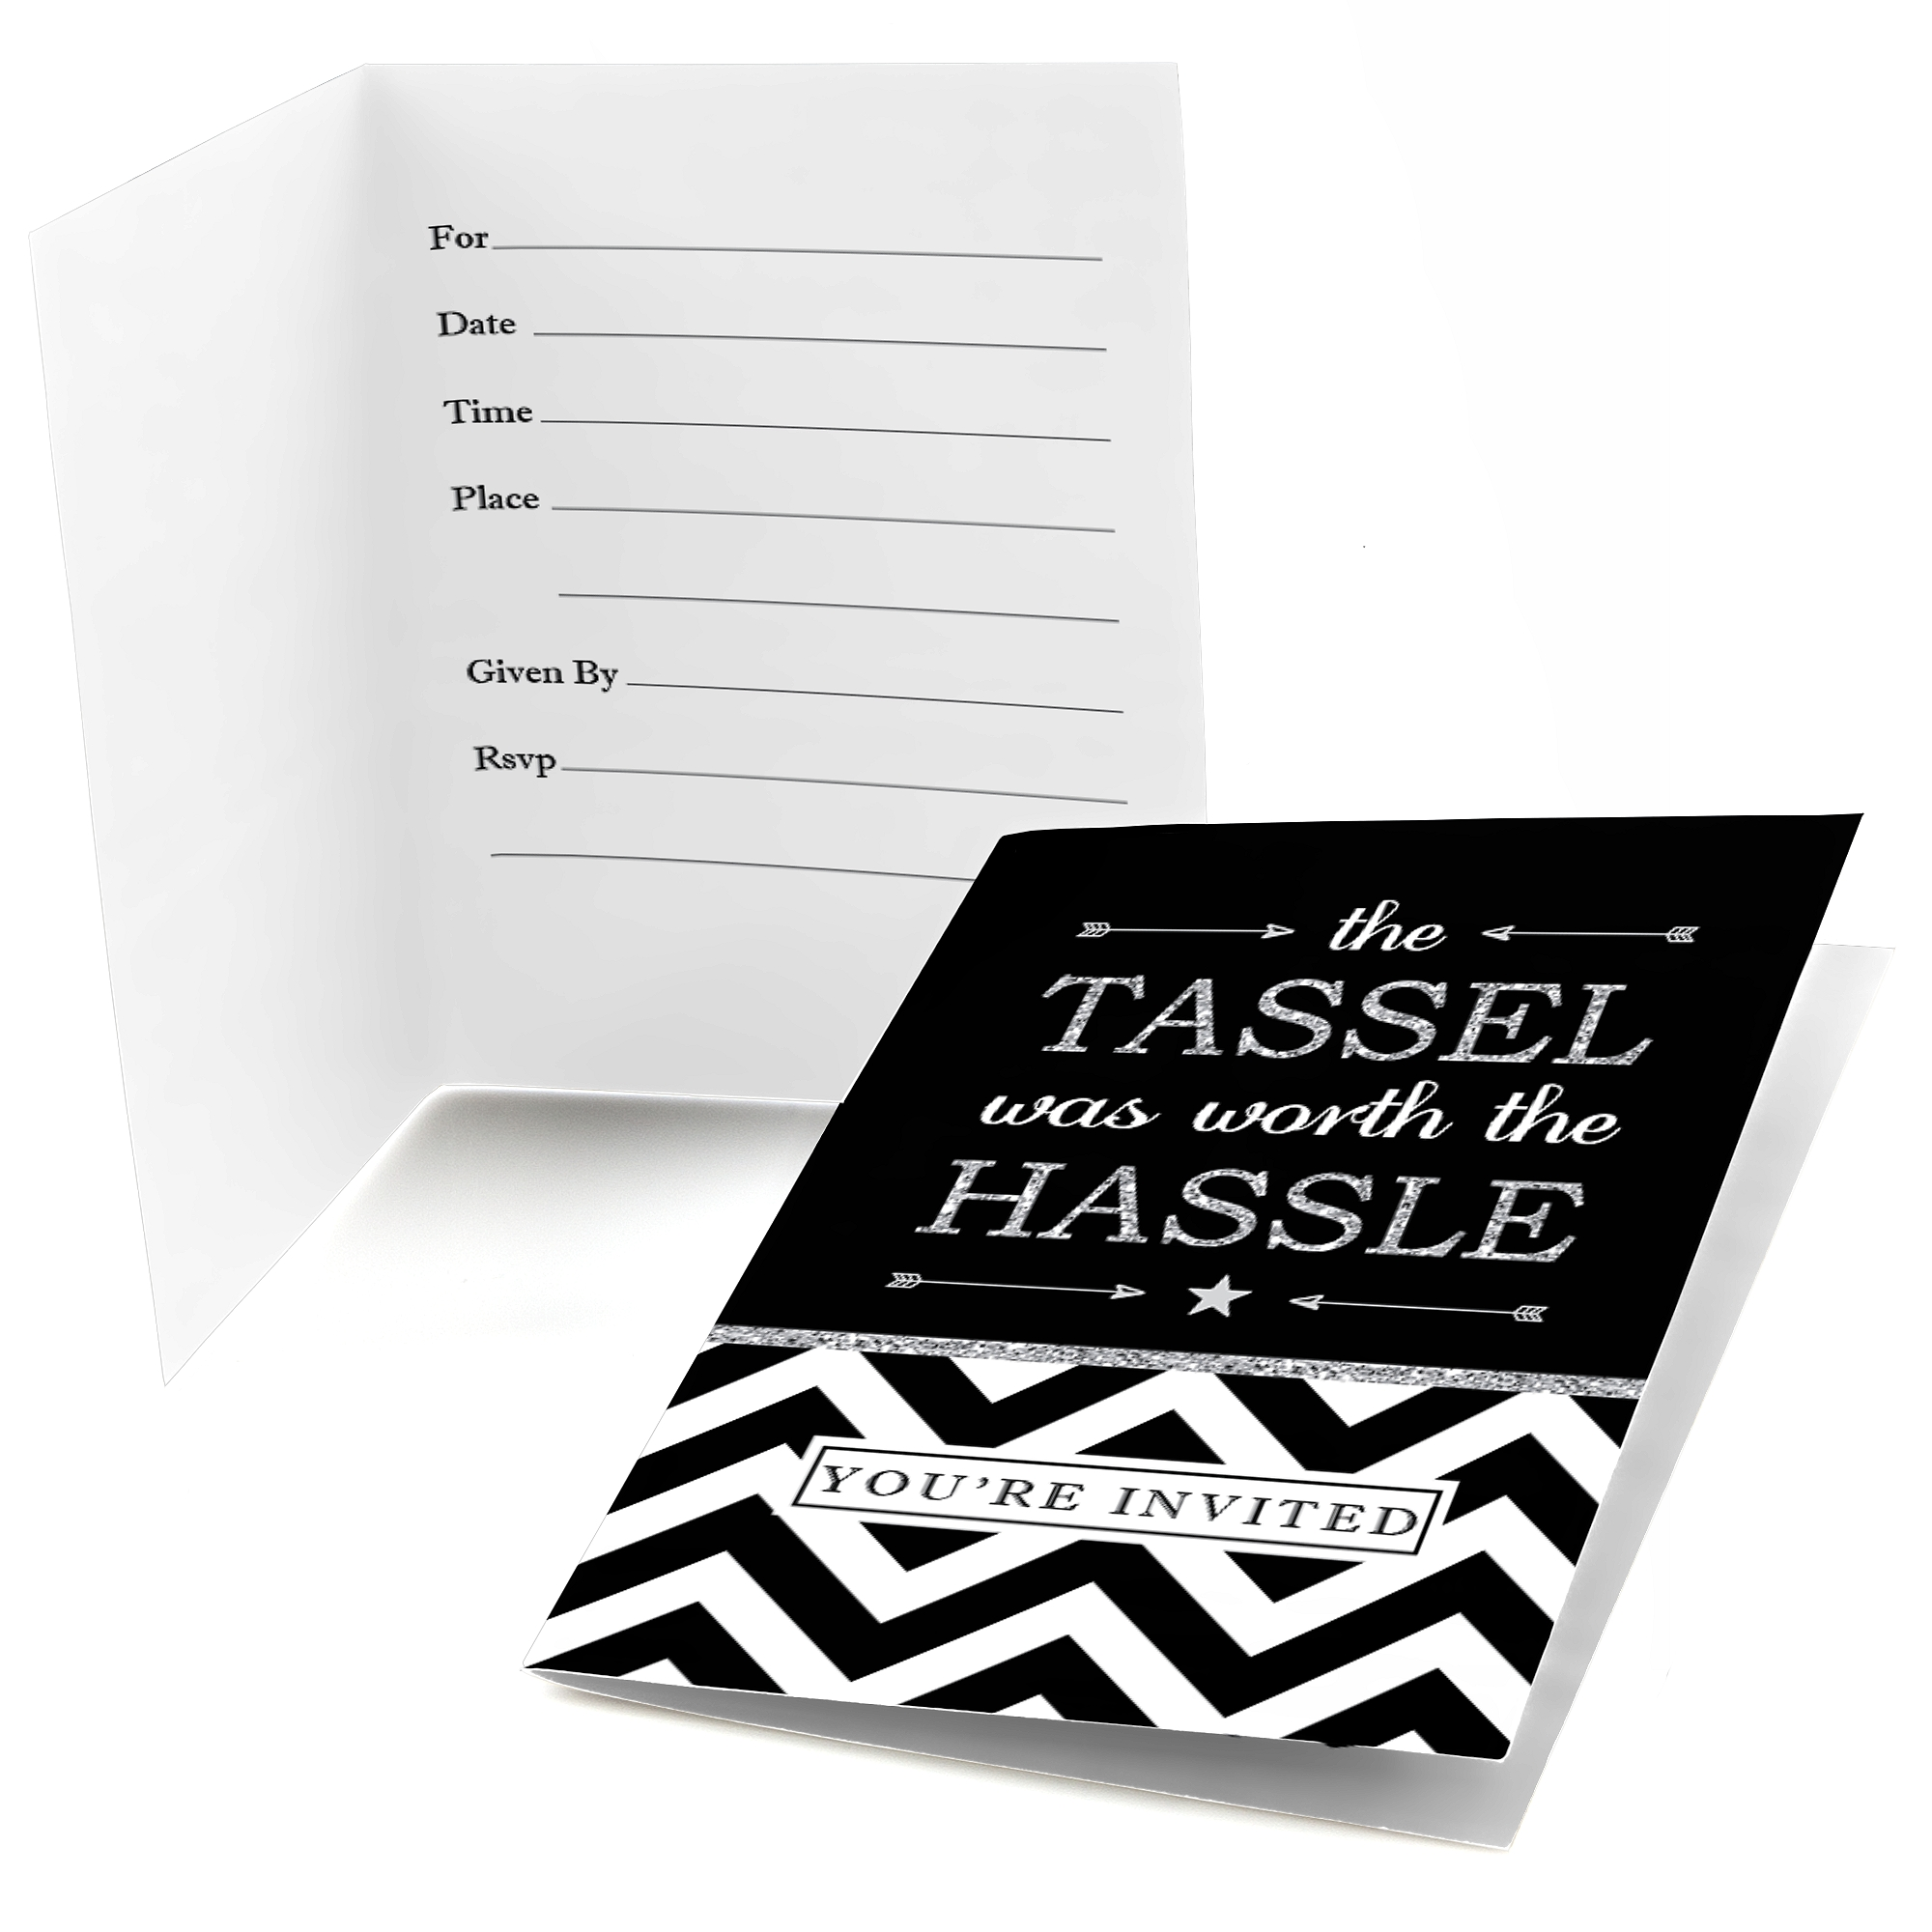 Silver Tassel Worth The Hassle - Fill In Graduation Party Invitations (8 count)